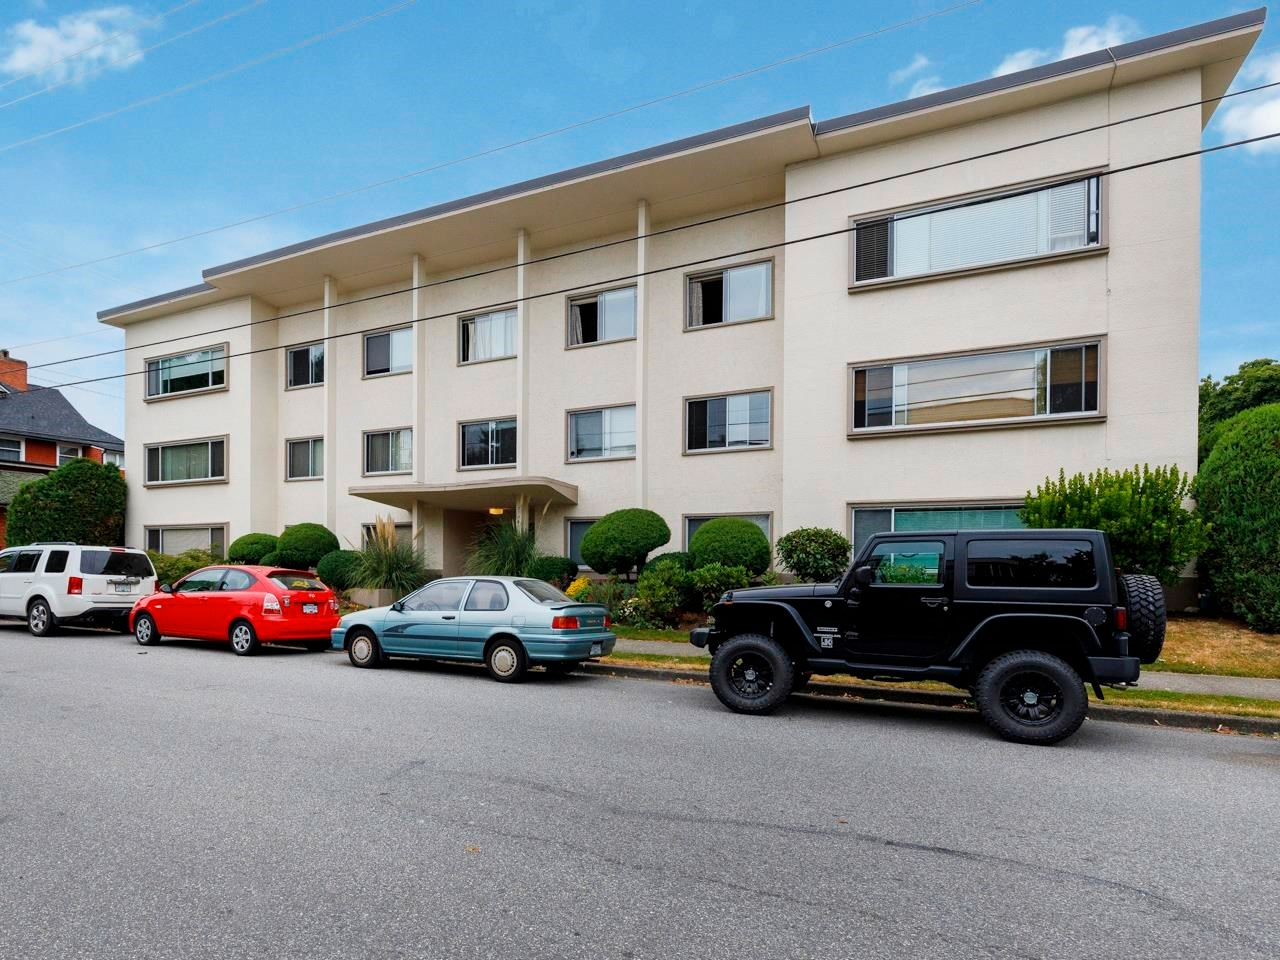 """Main Photo: 206 2776 PINE Street in Vancouver: Fairview VW Condo for sale in """"Prince Charles Apartments"""" (Vancouver West)  : MLS®# R2616060"""